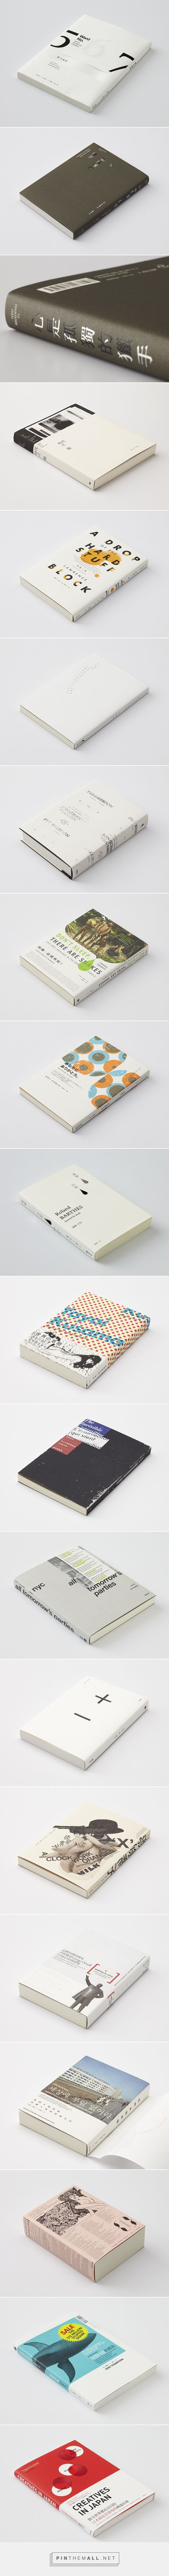 王志弘 - Selection of Book Designs, 2011